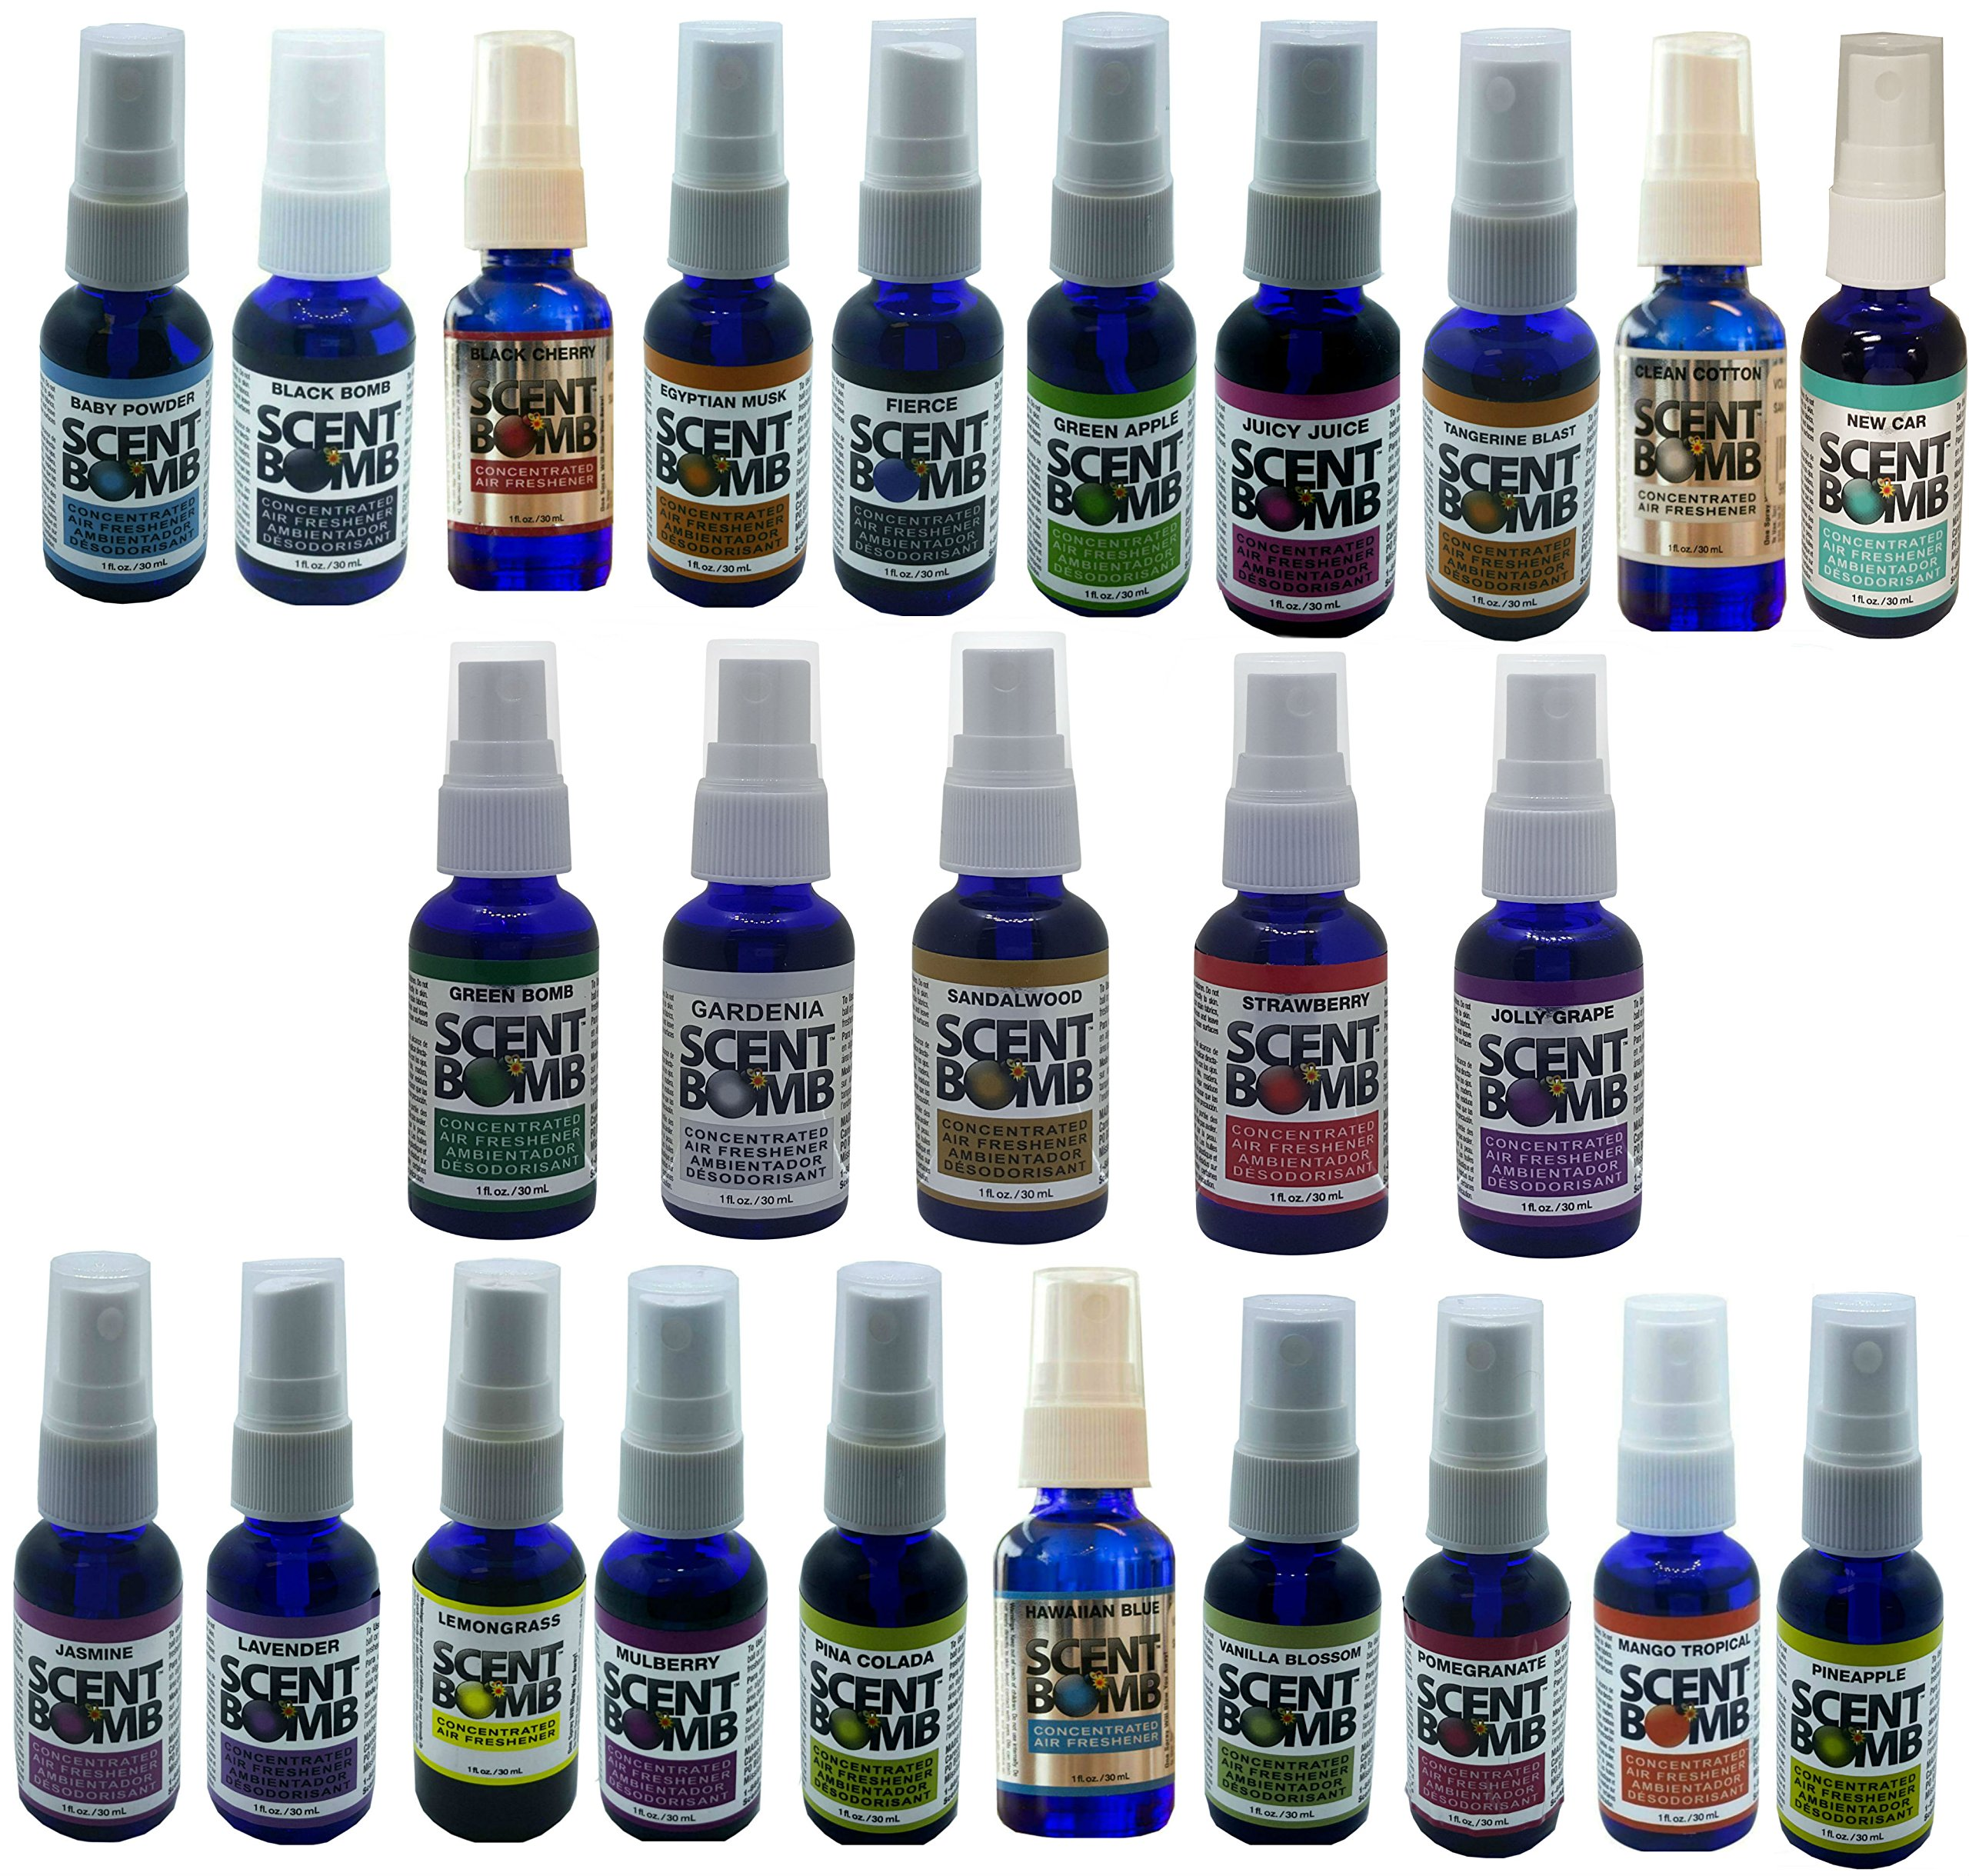 Scent Bomb 1oz Pure Concentrated Air Freshener 24 Different Fragrance Starter Pack Display (Without Display Case)